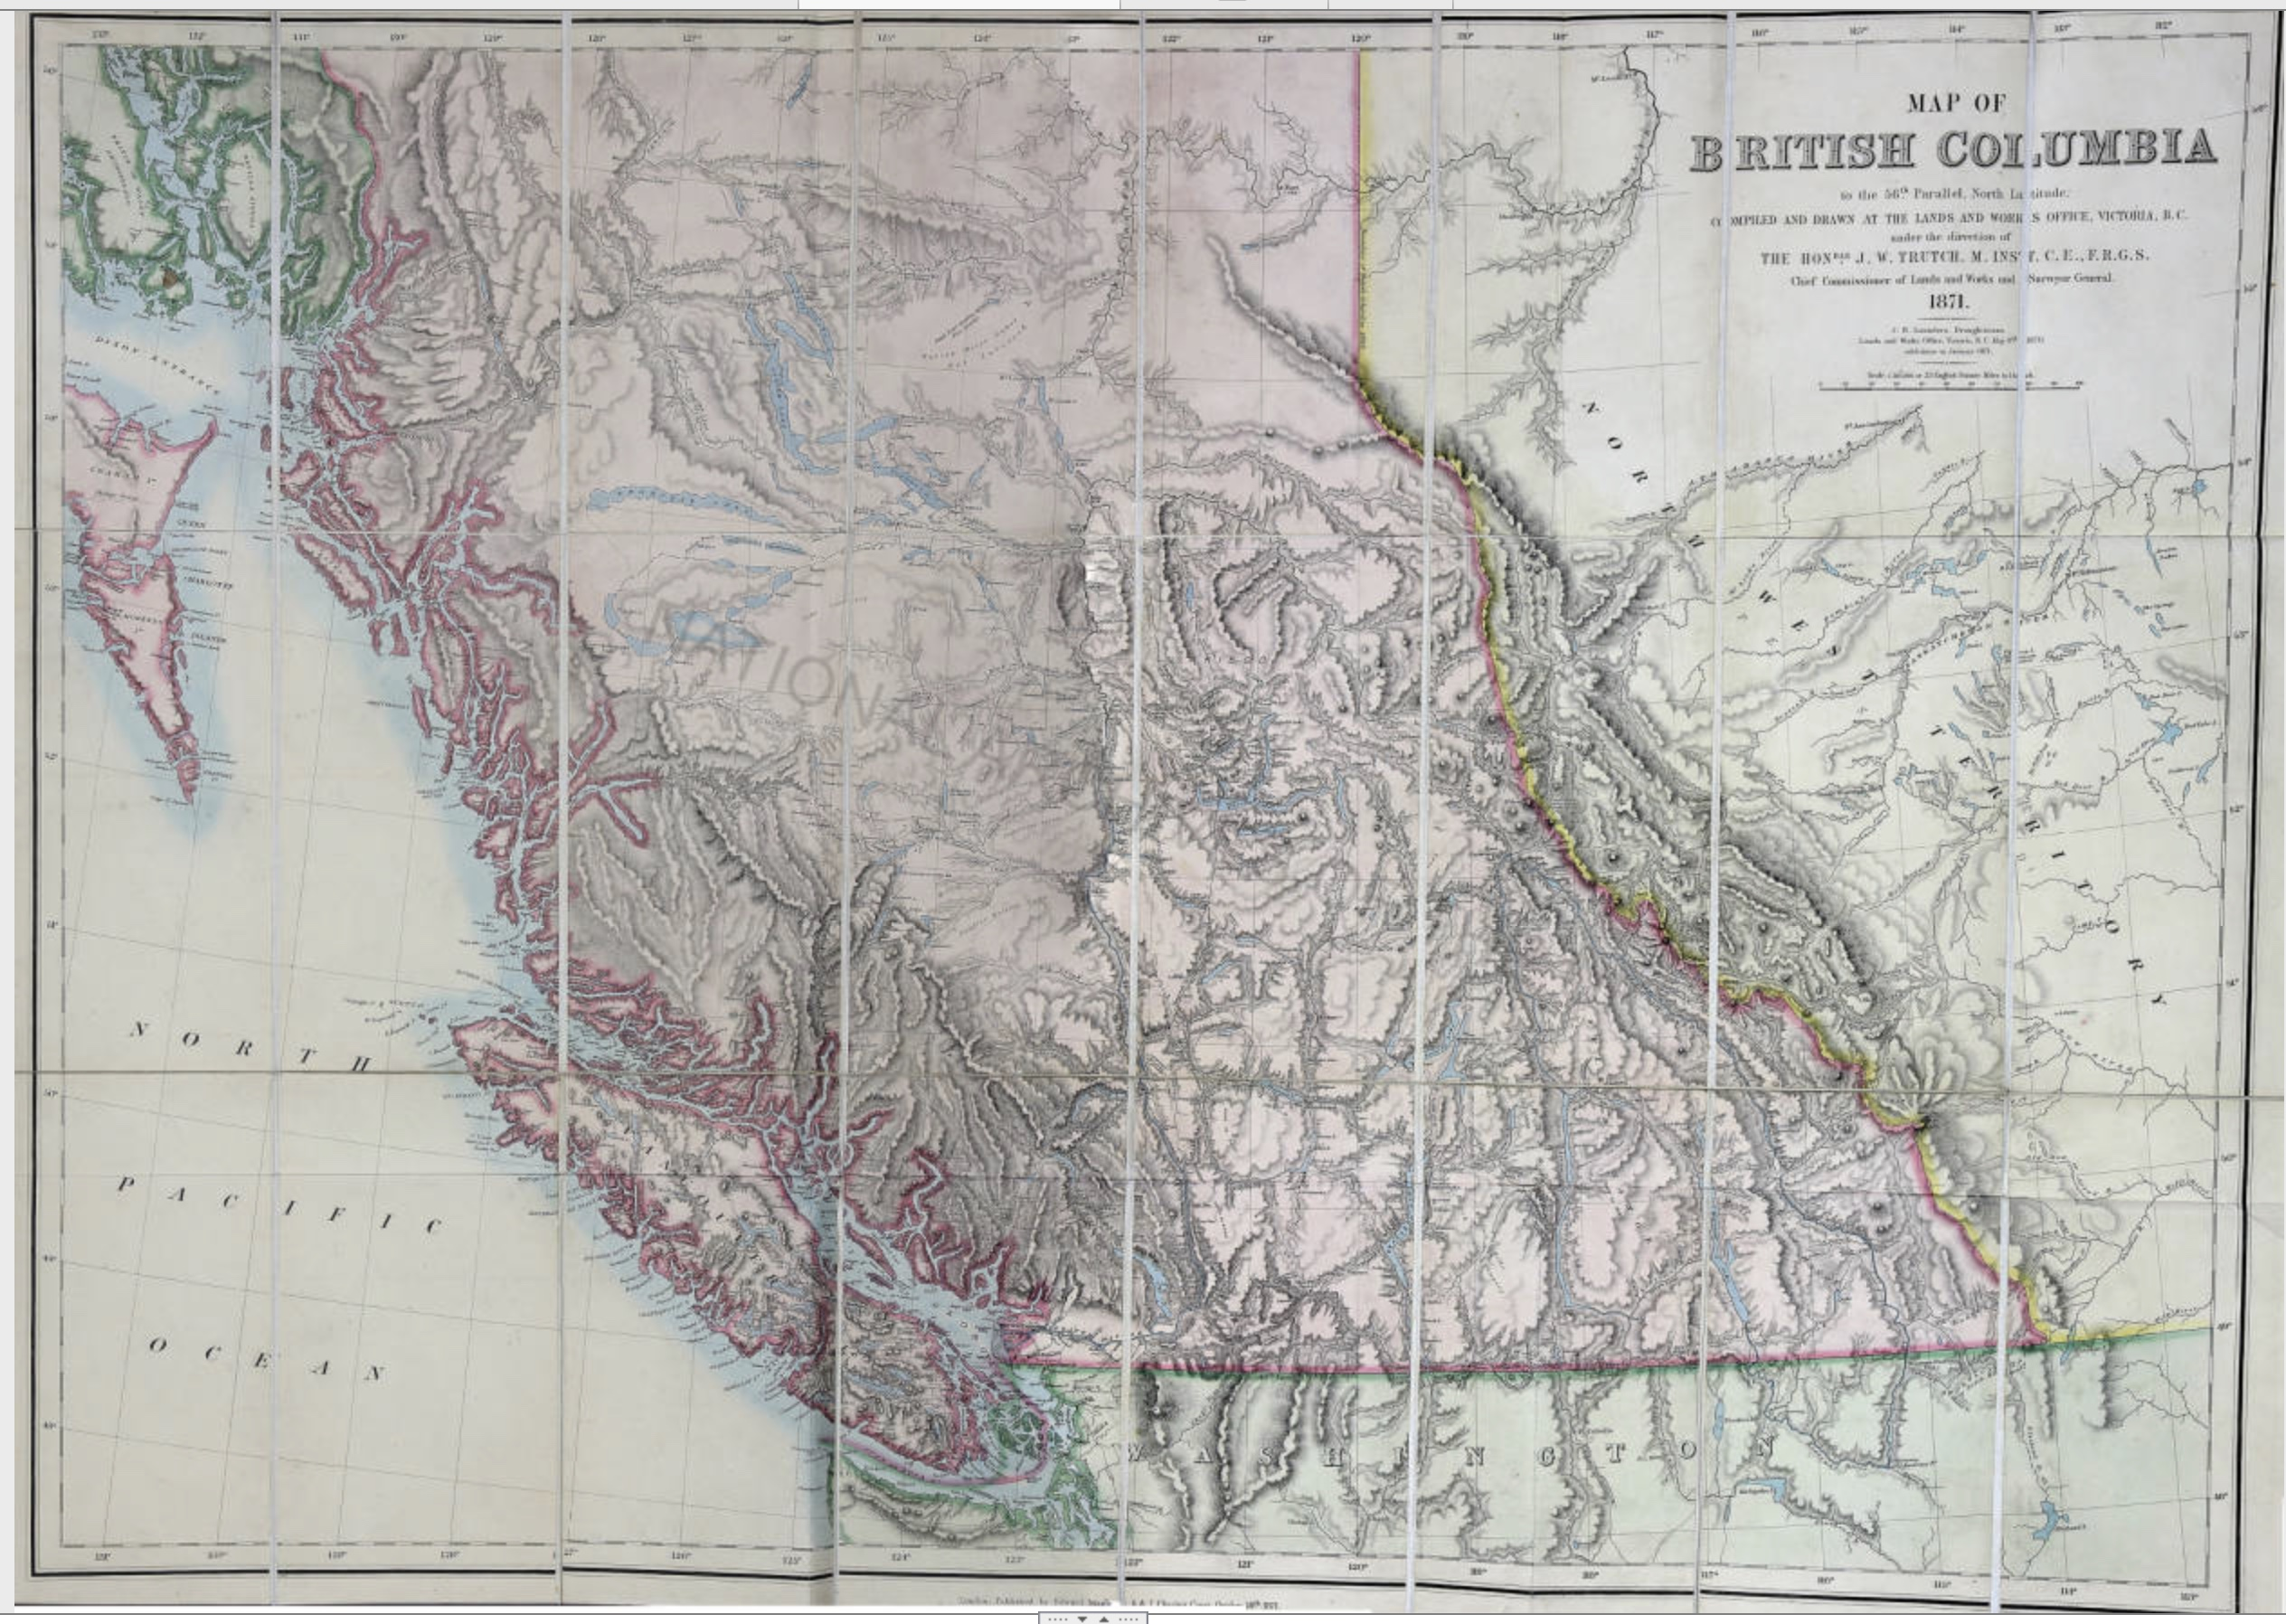 Trutch, Joseph William. Map of British Columbia to the 56th Parallel North Latitude, 1871